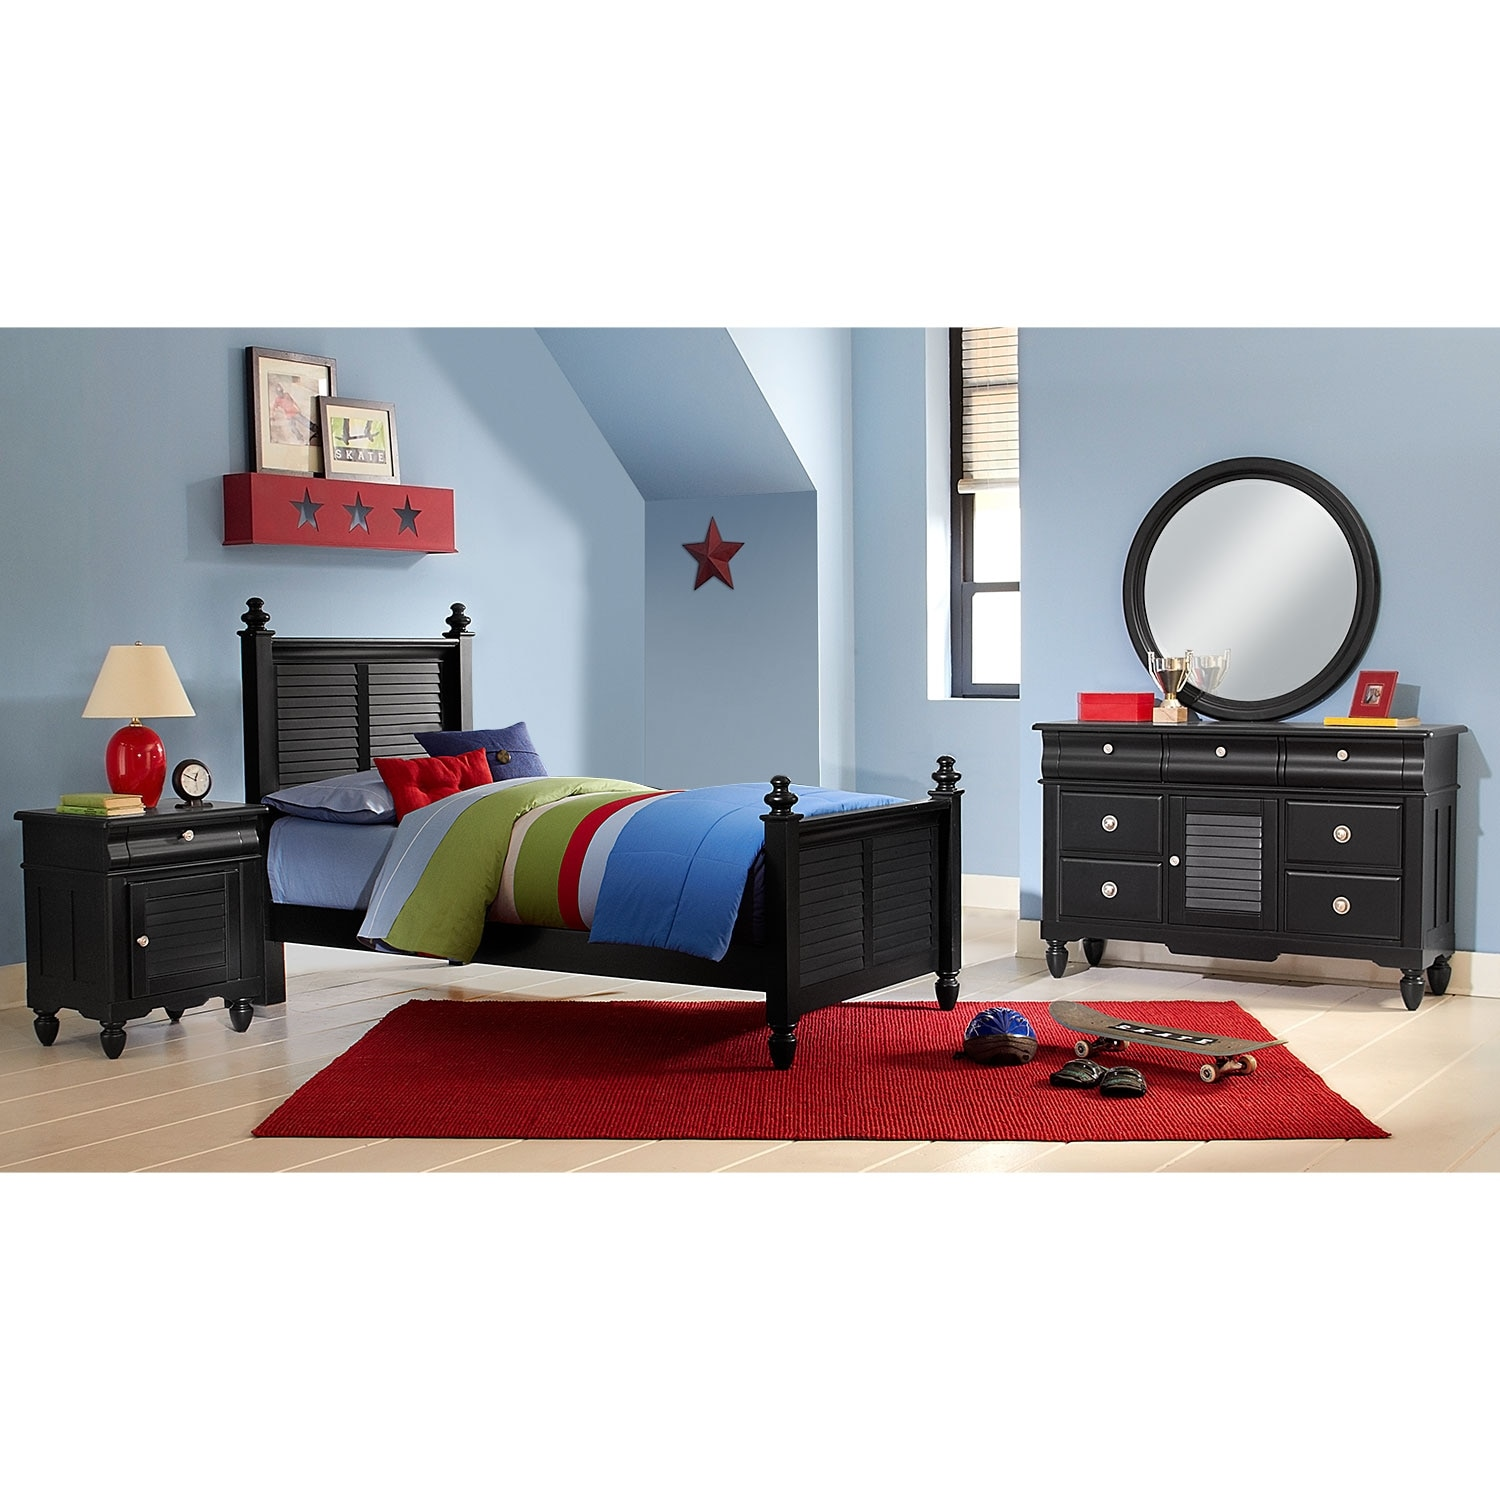 Seaside 6-Piece Full Bedroom Set - Black